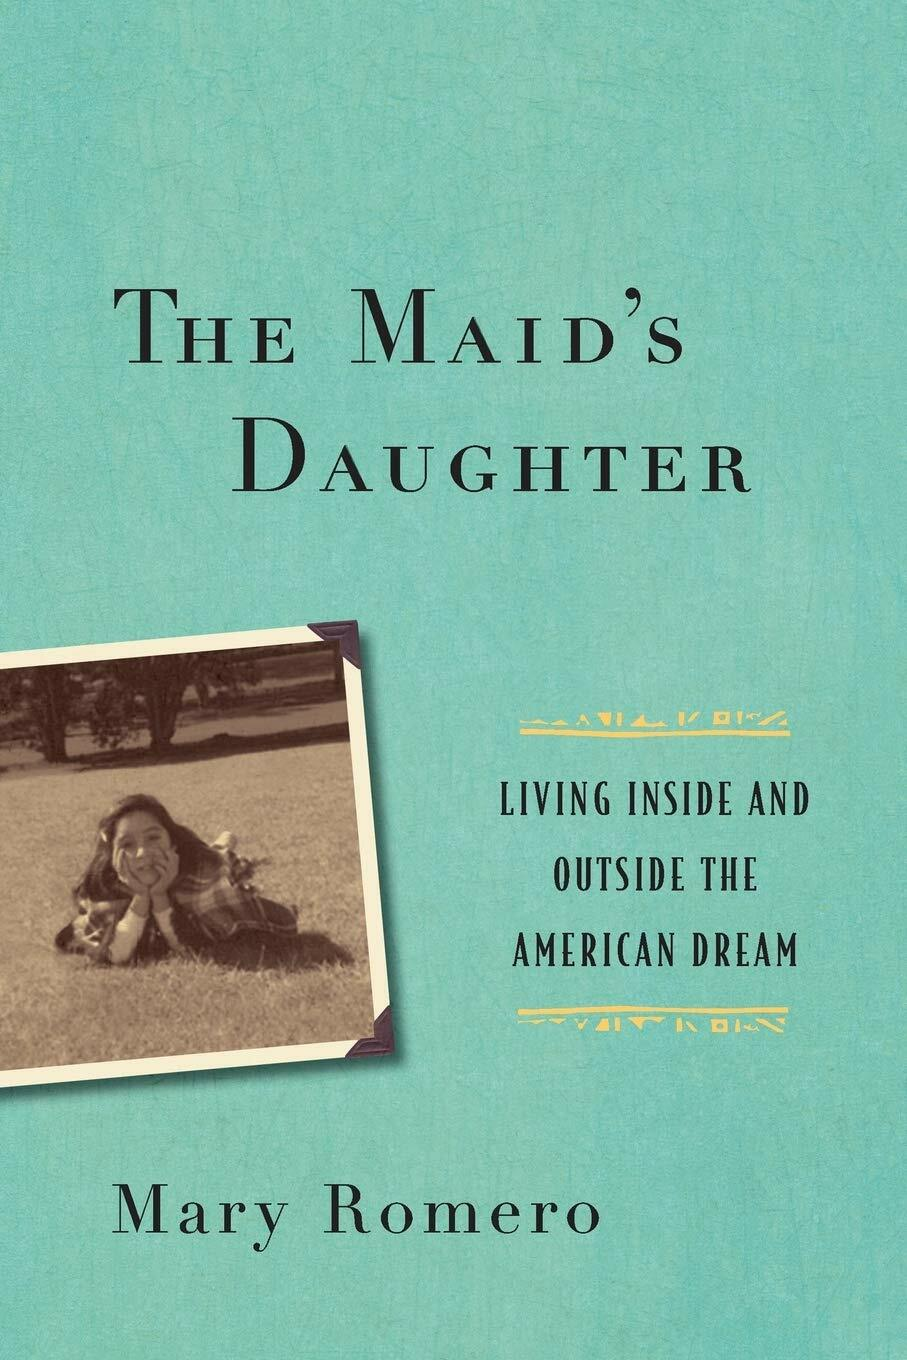 The Maid's Daughter book by Mary Romero